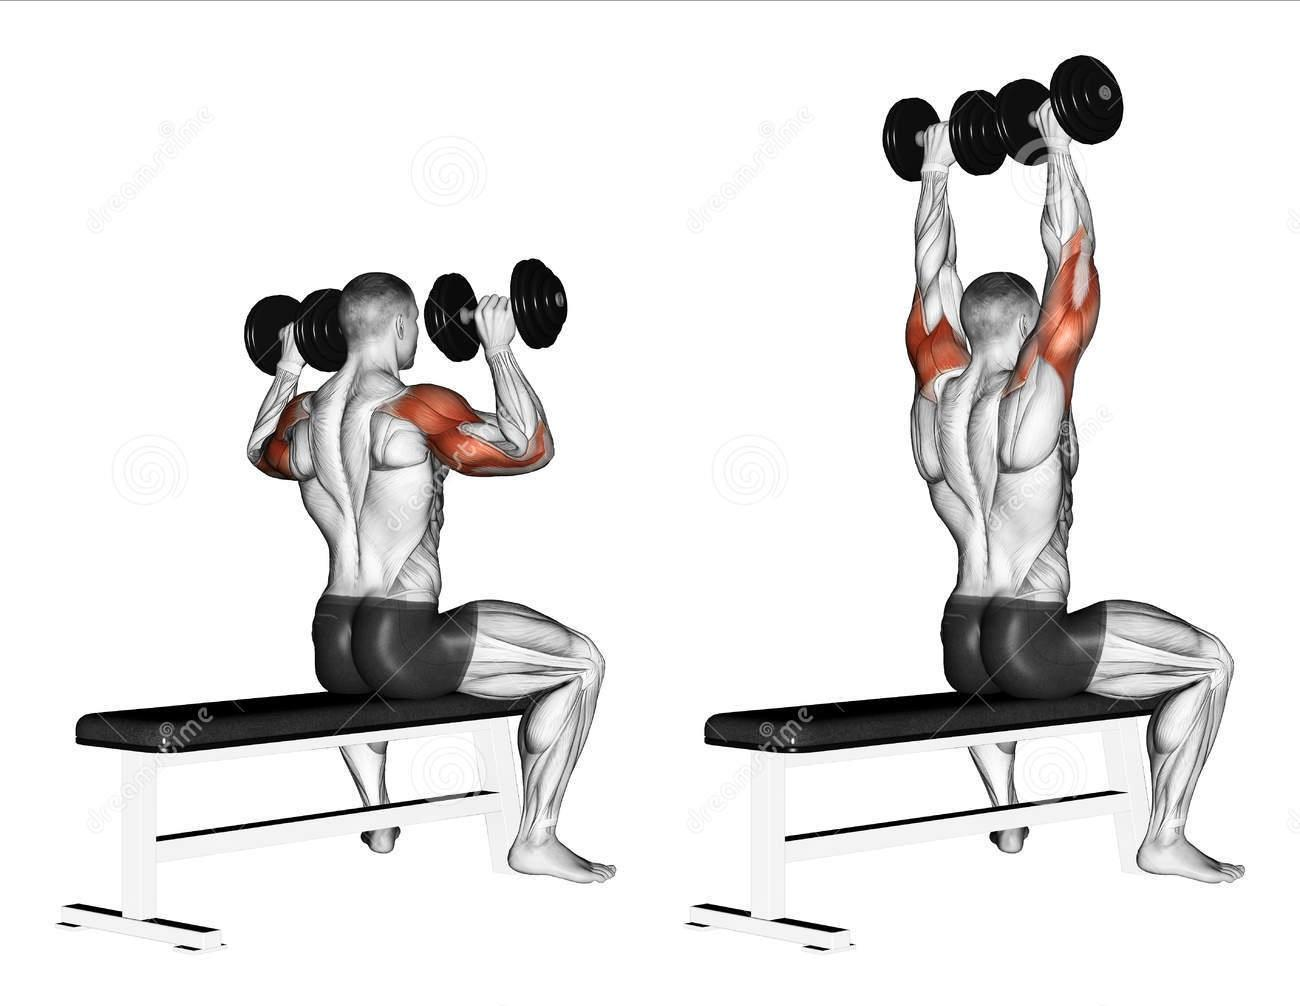 Could I have fucked up my lower back with this exercise